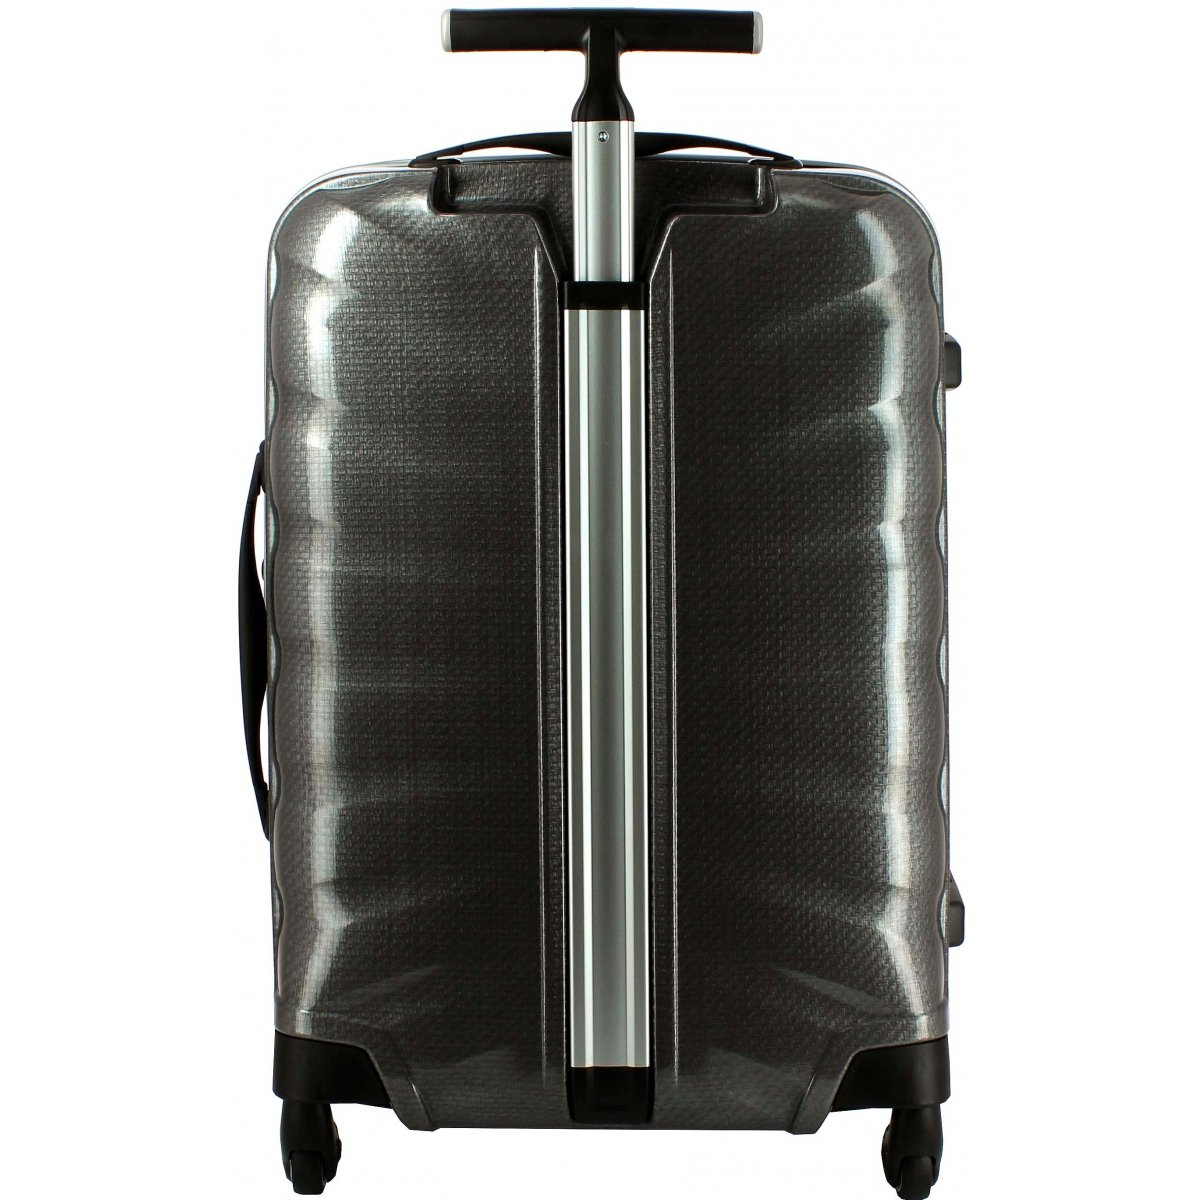 valise samsonite firelite spinner 69cm firelite60 couleur principale gris eclipse valise. Black Bedroom Furniture Sets. Home Design Ideas